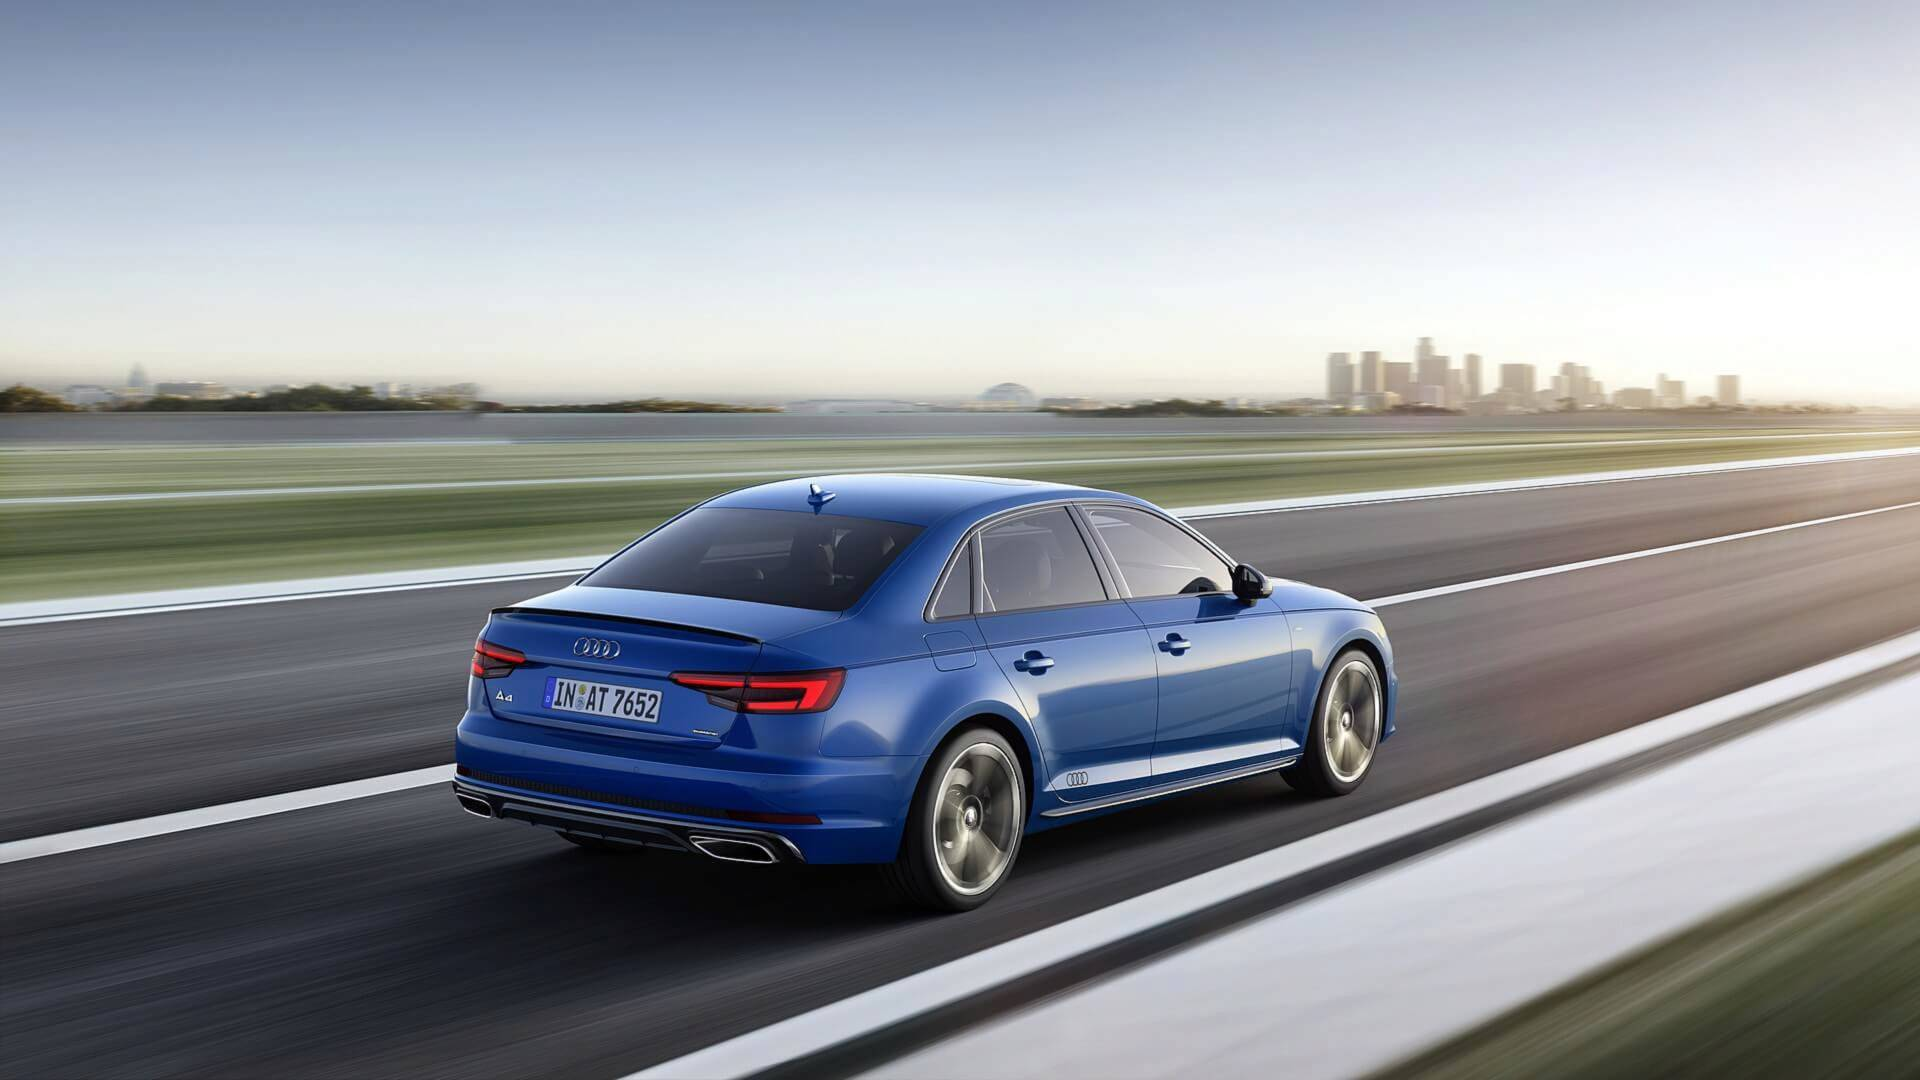 2019 Audi A4 A5 Lose Manual Transmission Option In The United